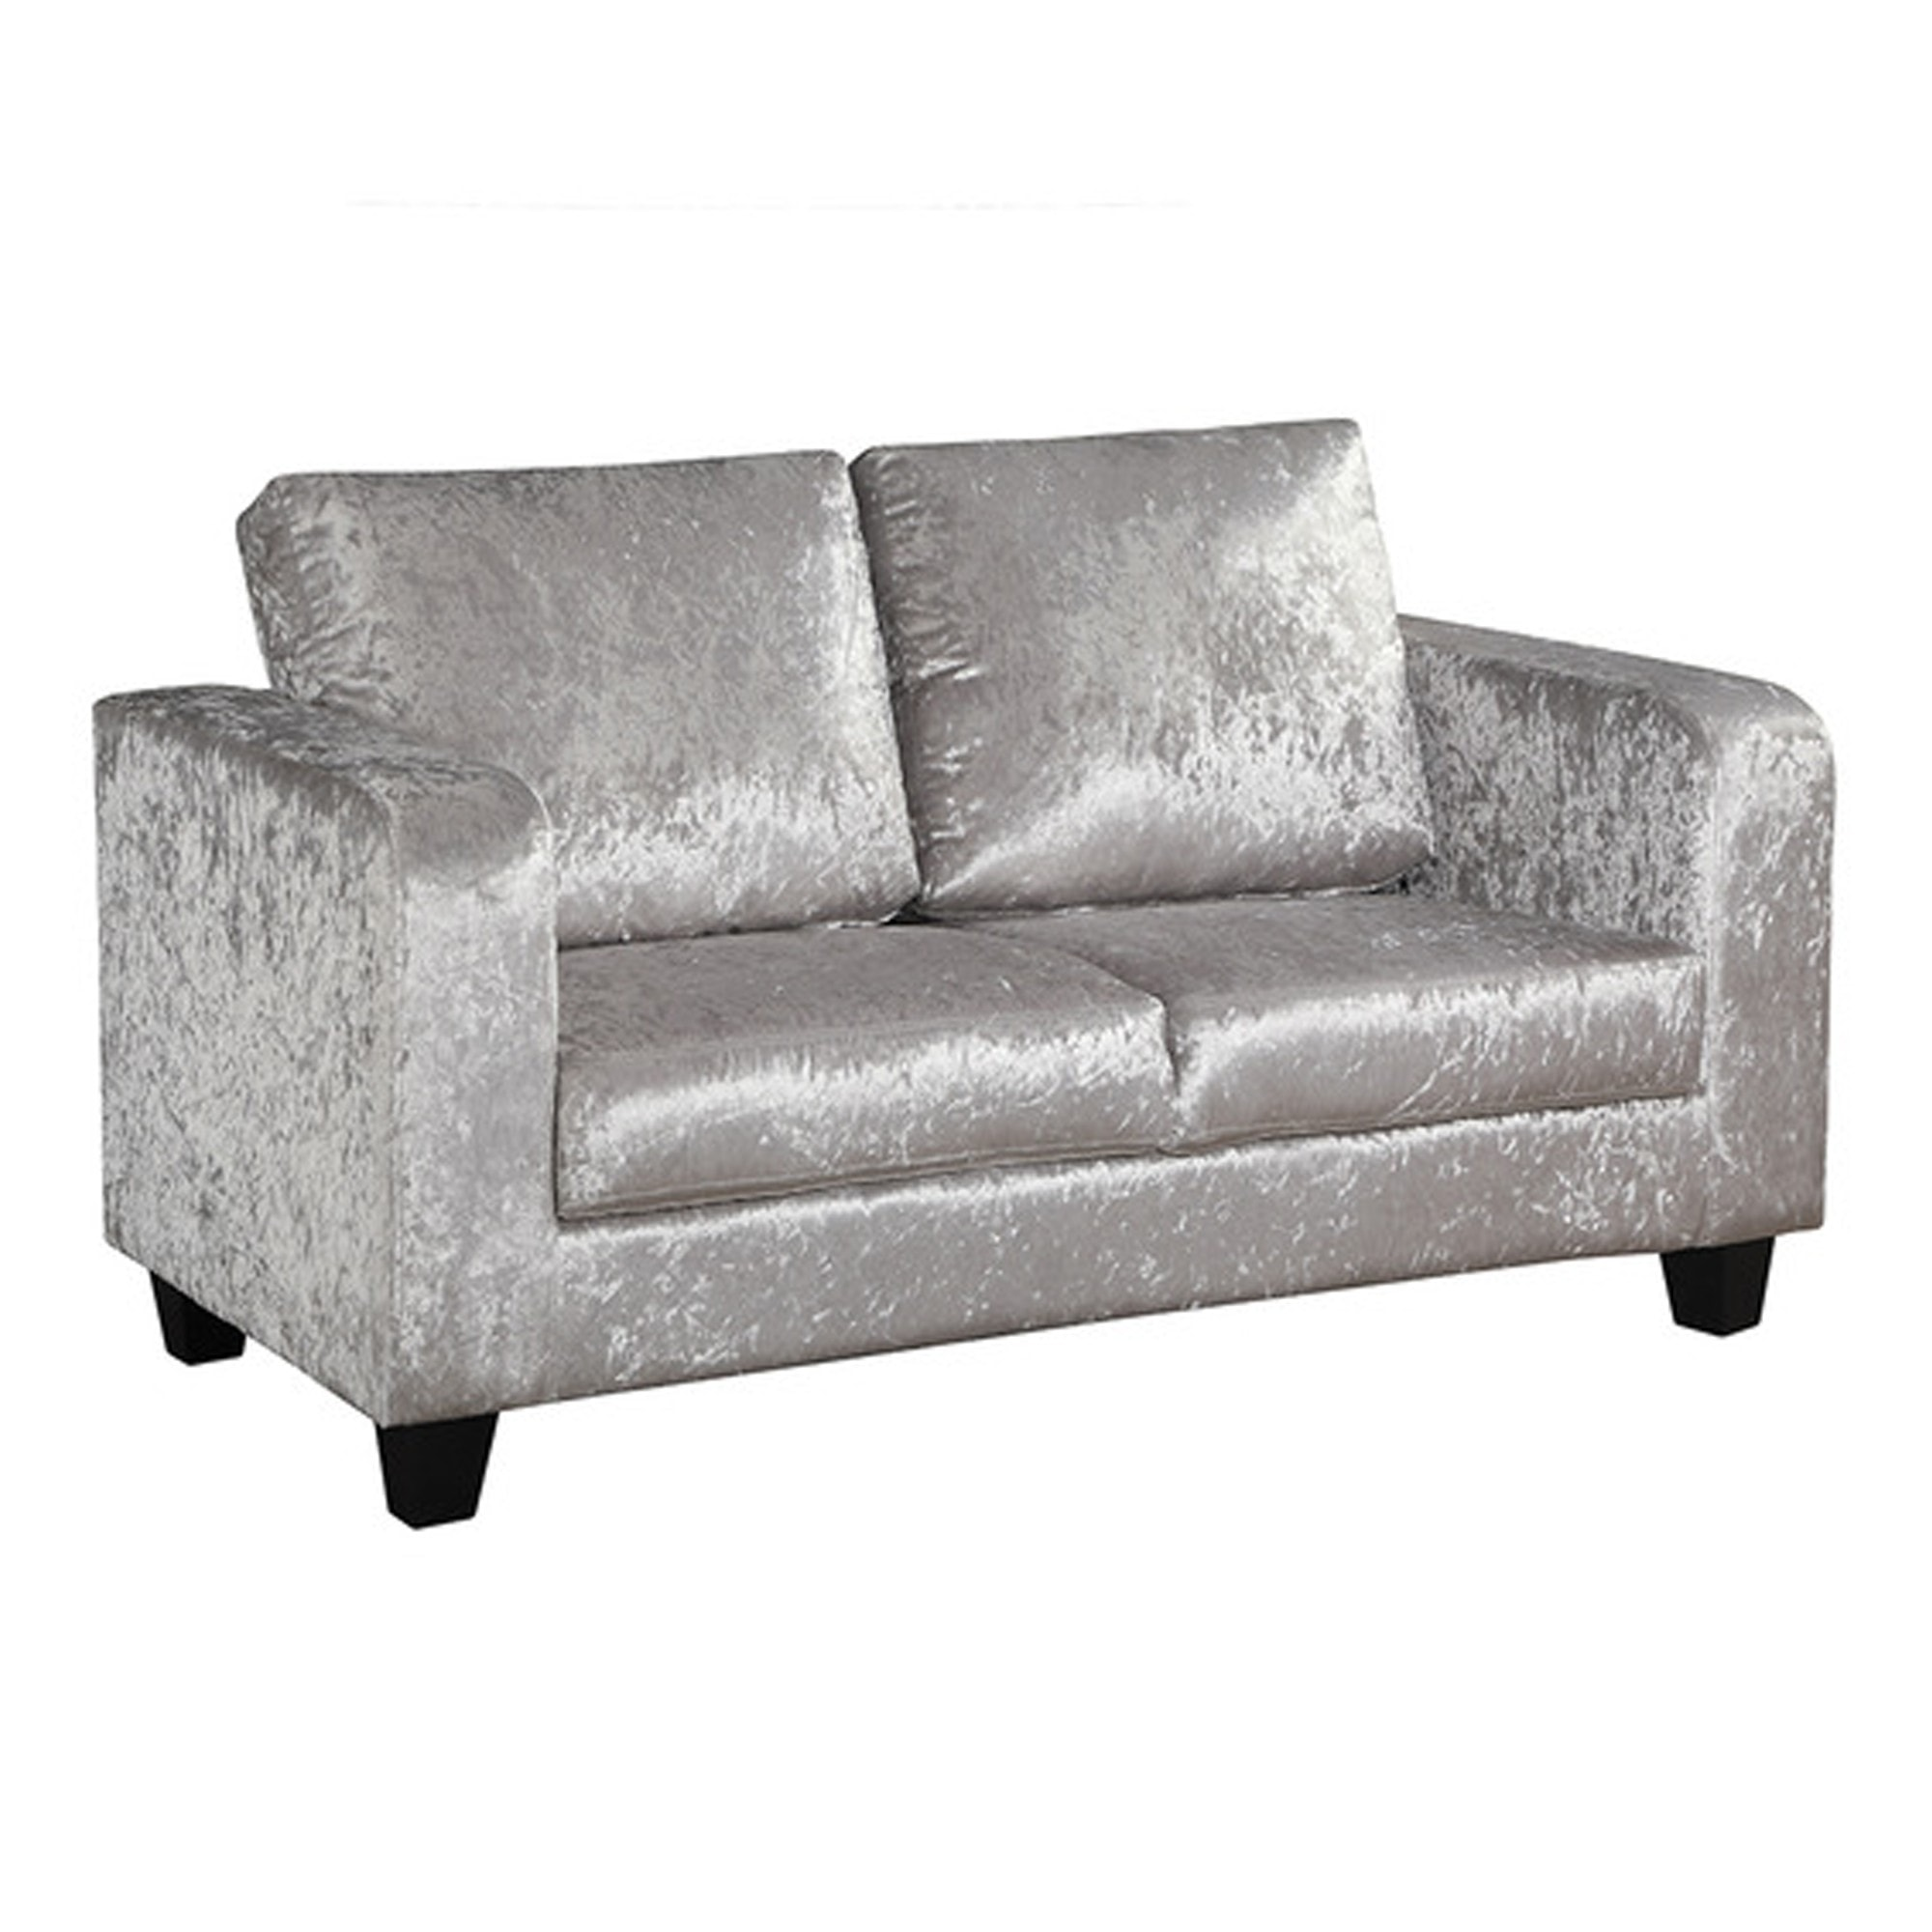 Picture of: Silver Crushed Velvet Sofa Crushed Velvet Sofa Velvet Sofa